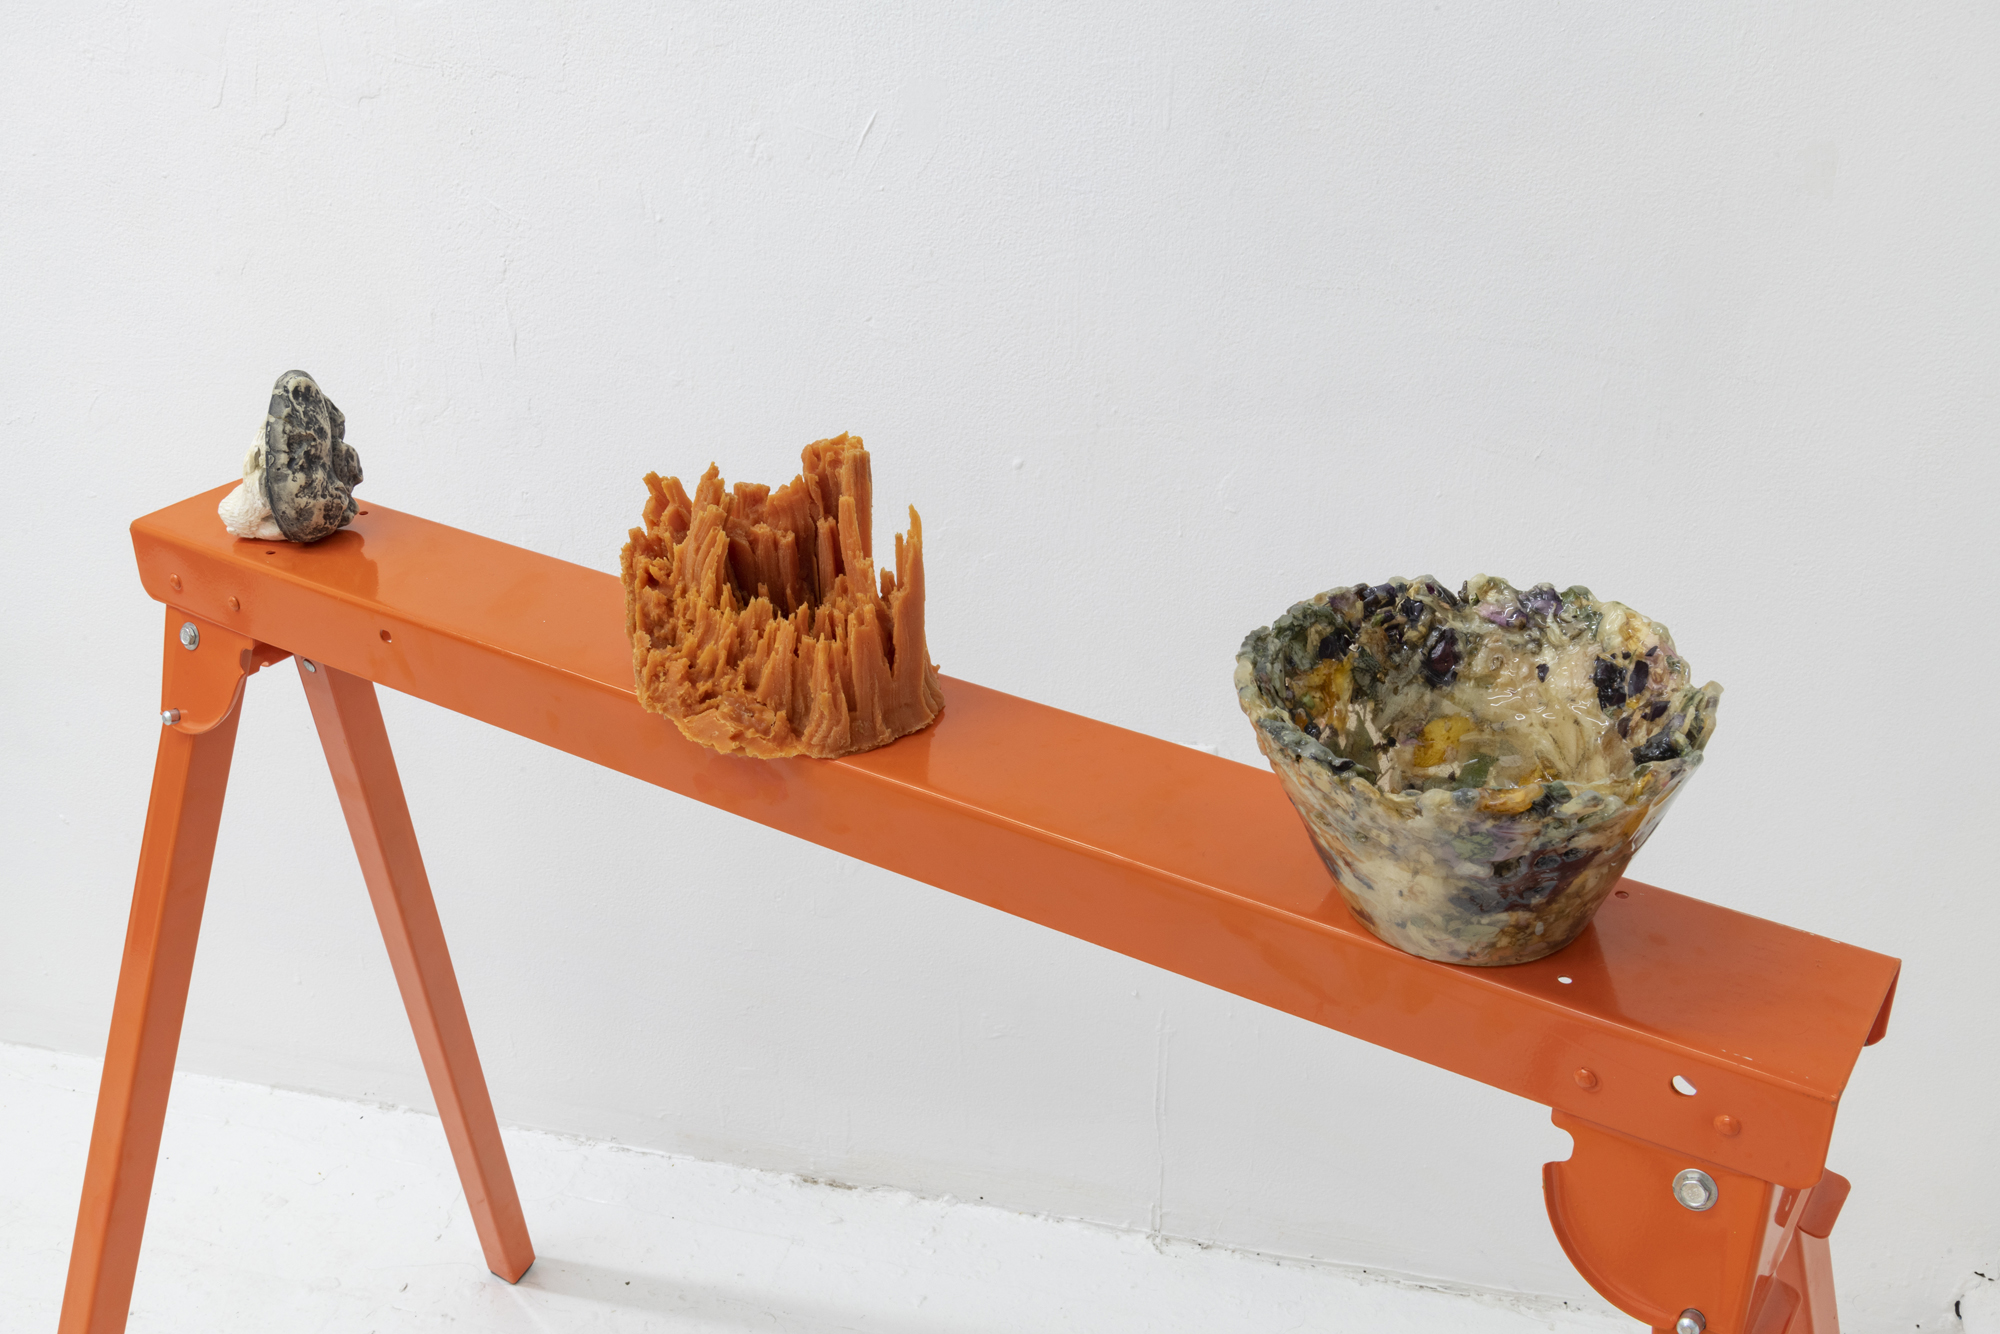 Left:   Opposite,  2018. Cast plaster, epoxy resin and hide-a-key faux rock. 4 x 3 x 3 inches.  Center :  Out of , 2018. Cast polyurethane rubber. 7.5 x 5 x 4.5 inches.  Right:   In Spite Of ,  2018. Epoxy resin and dried flowers. 4 x 7 x 7 inches.